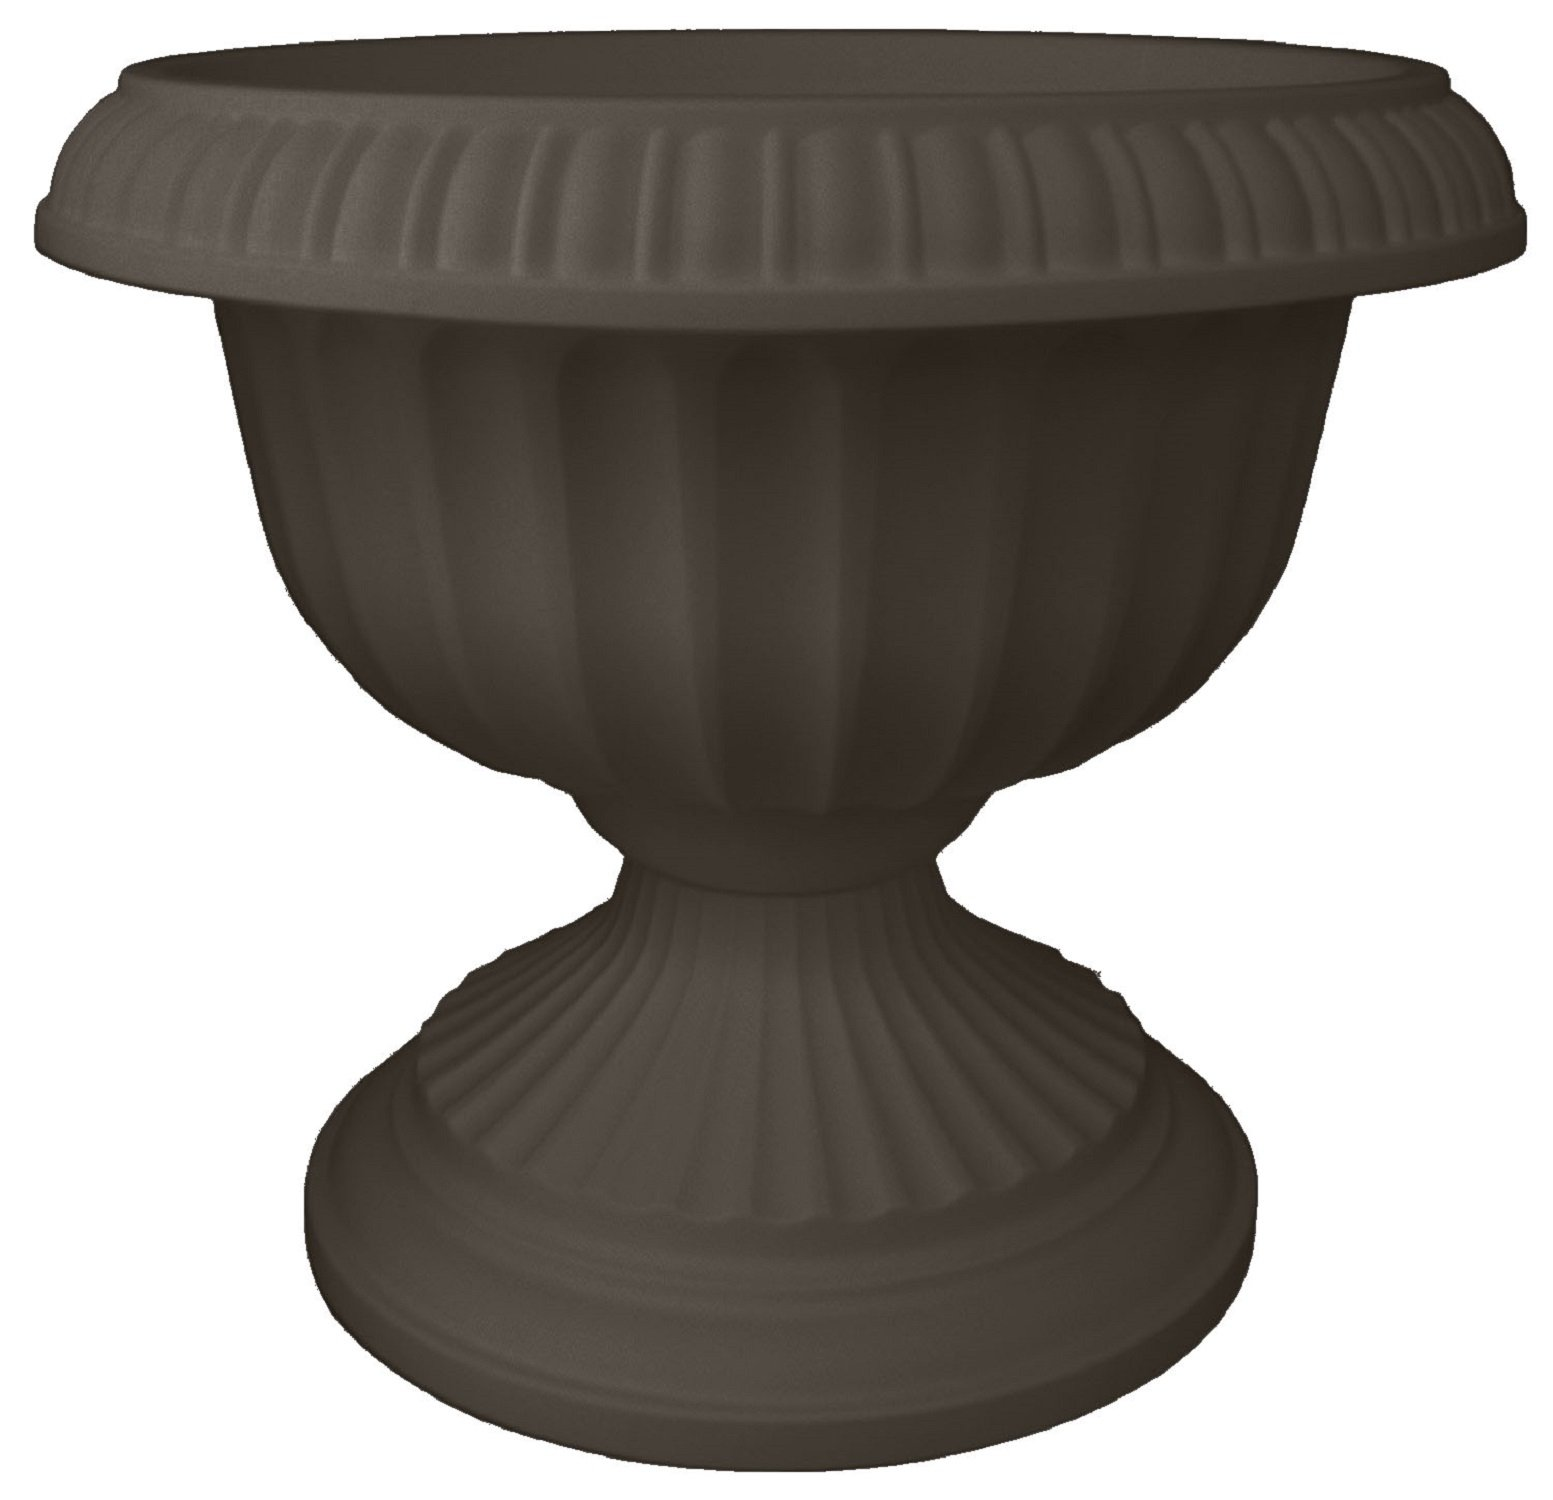 Bloem Grecian Urn Planter, 18'', Peppercorn by Bloem